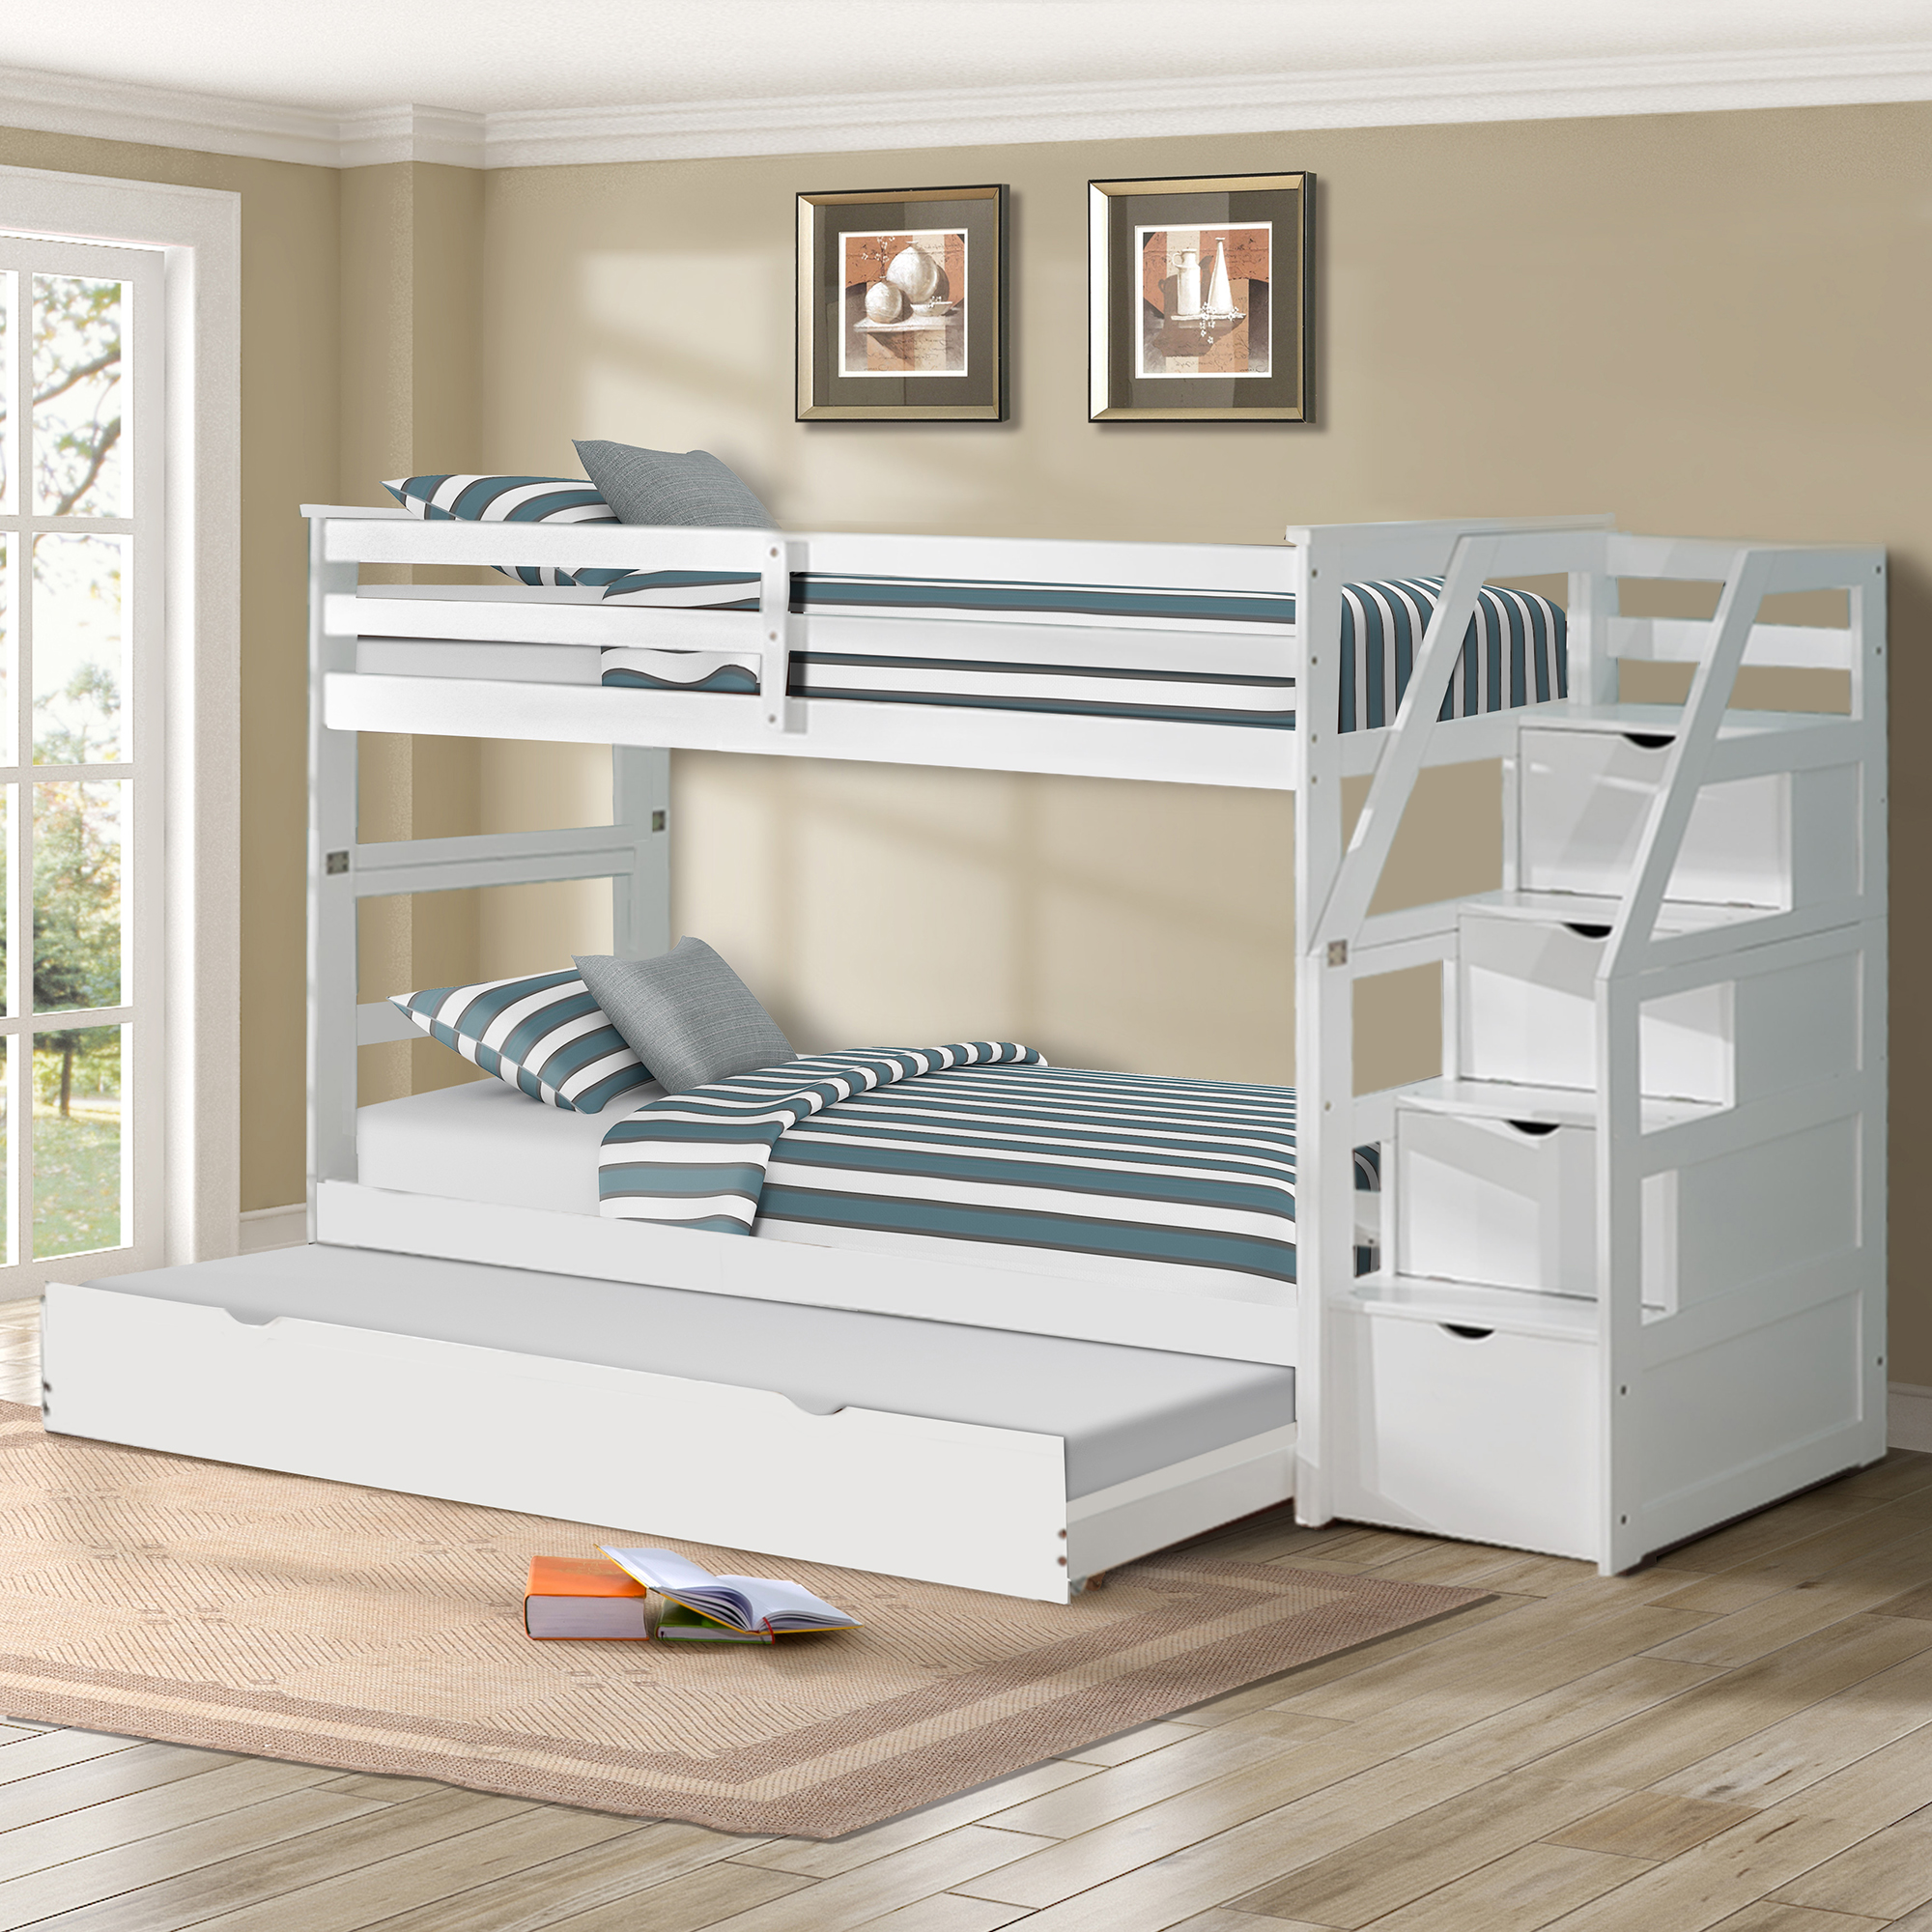 Bunk Beds Twin Over Twin with 4 Drawers in The Steps and a ...